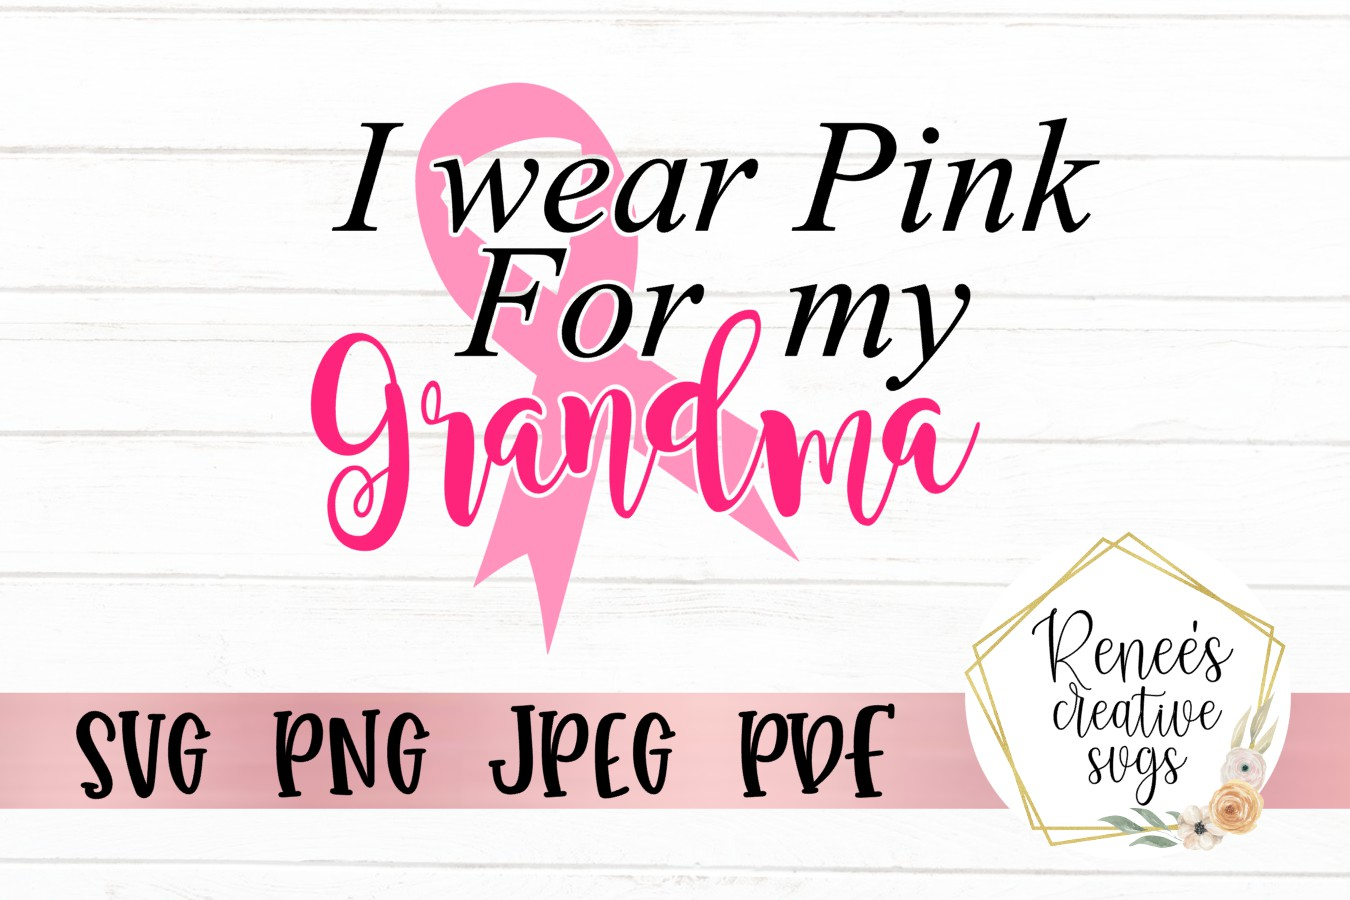 I wear pink for my grandma|Breast cancer awareness SVG example image 2